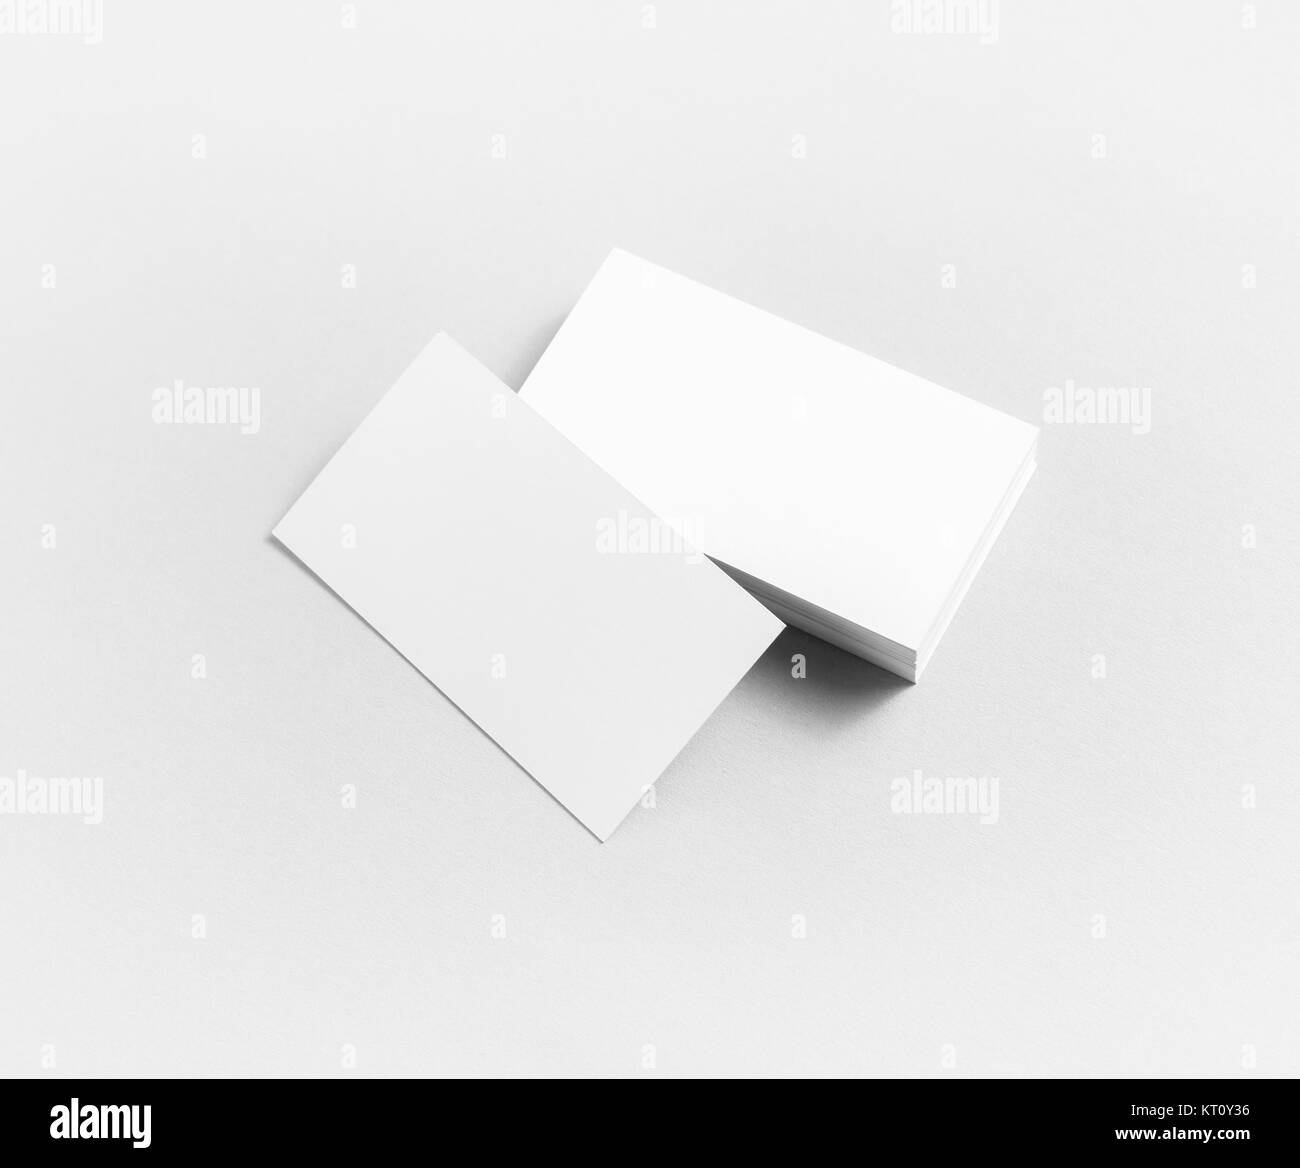 Photo of blank business cards on paper background for design stock photo of blank business cards on paper background for design portfolios colourmoves